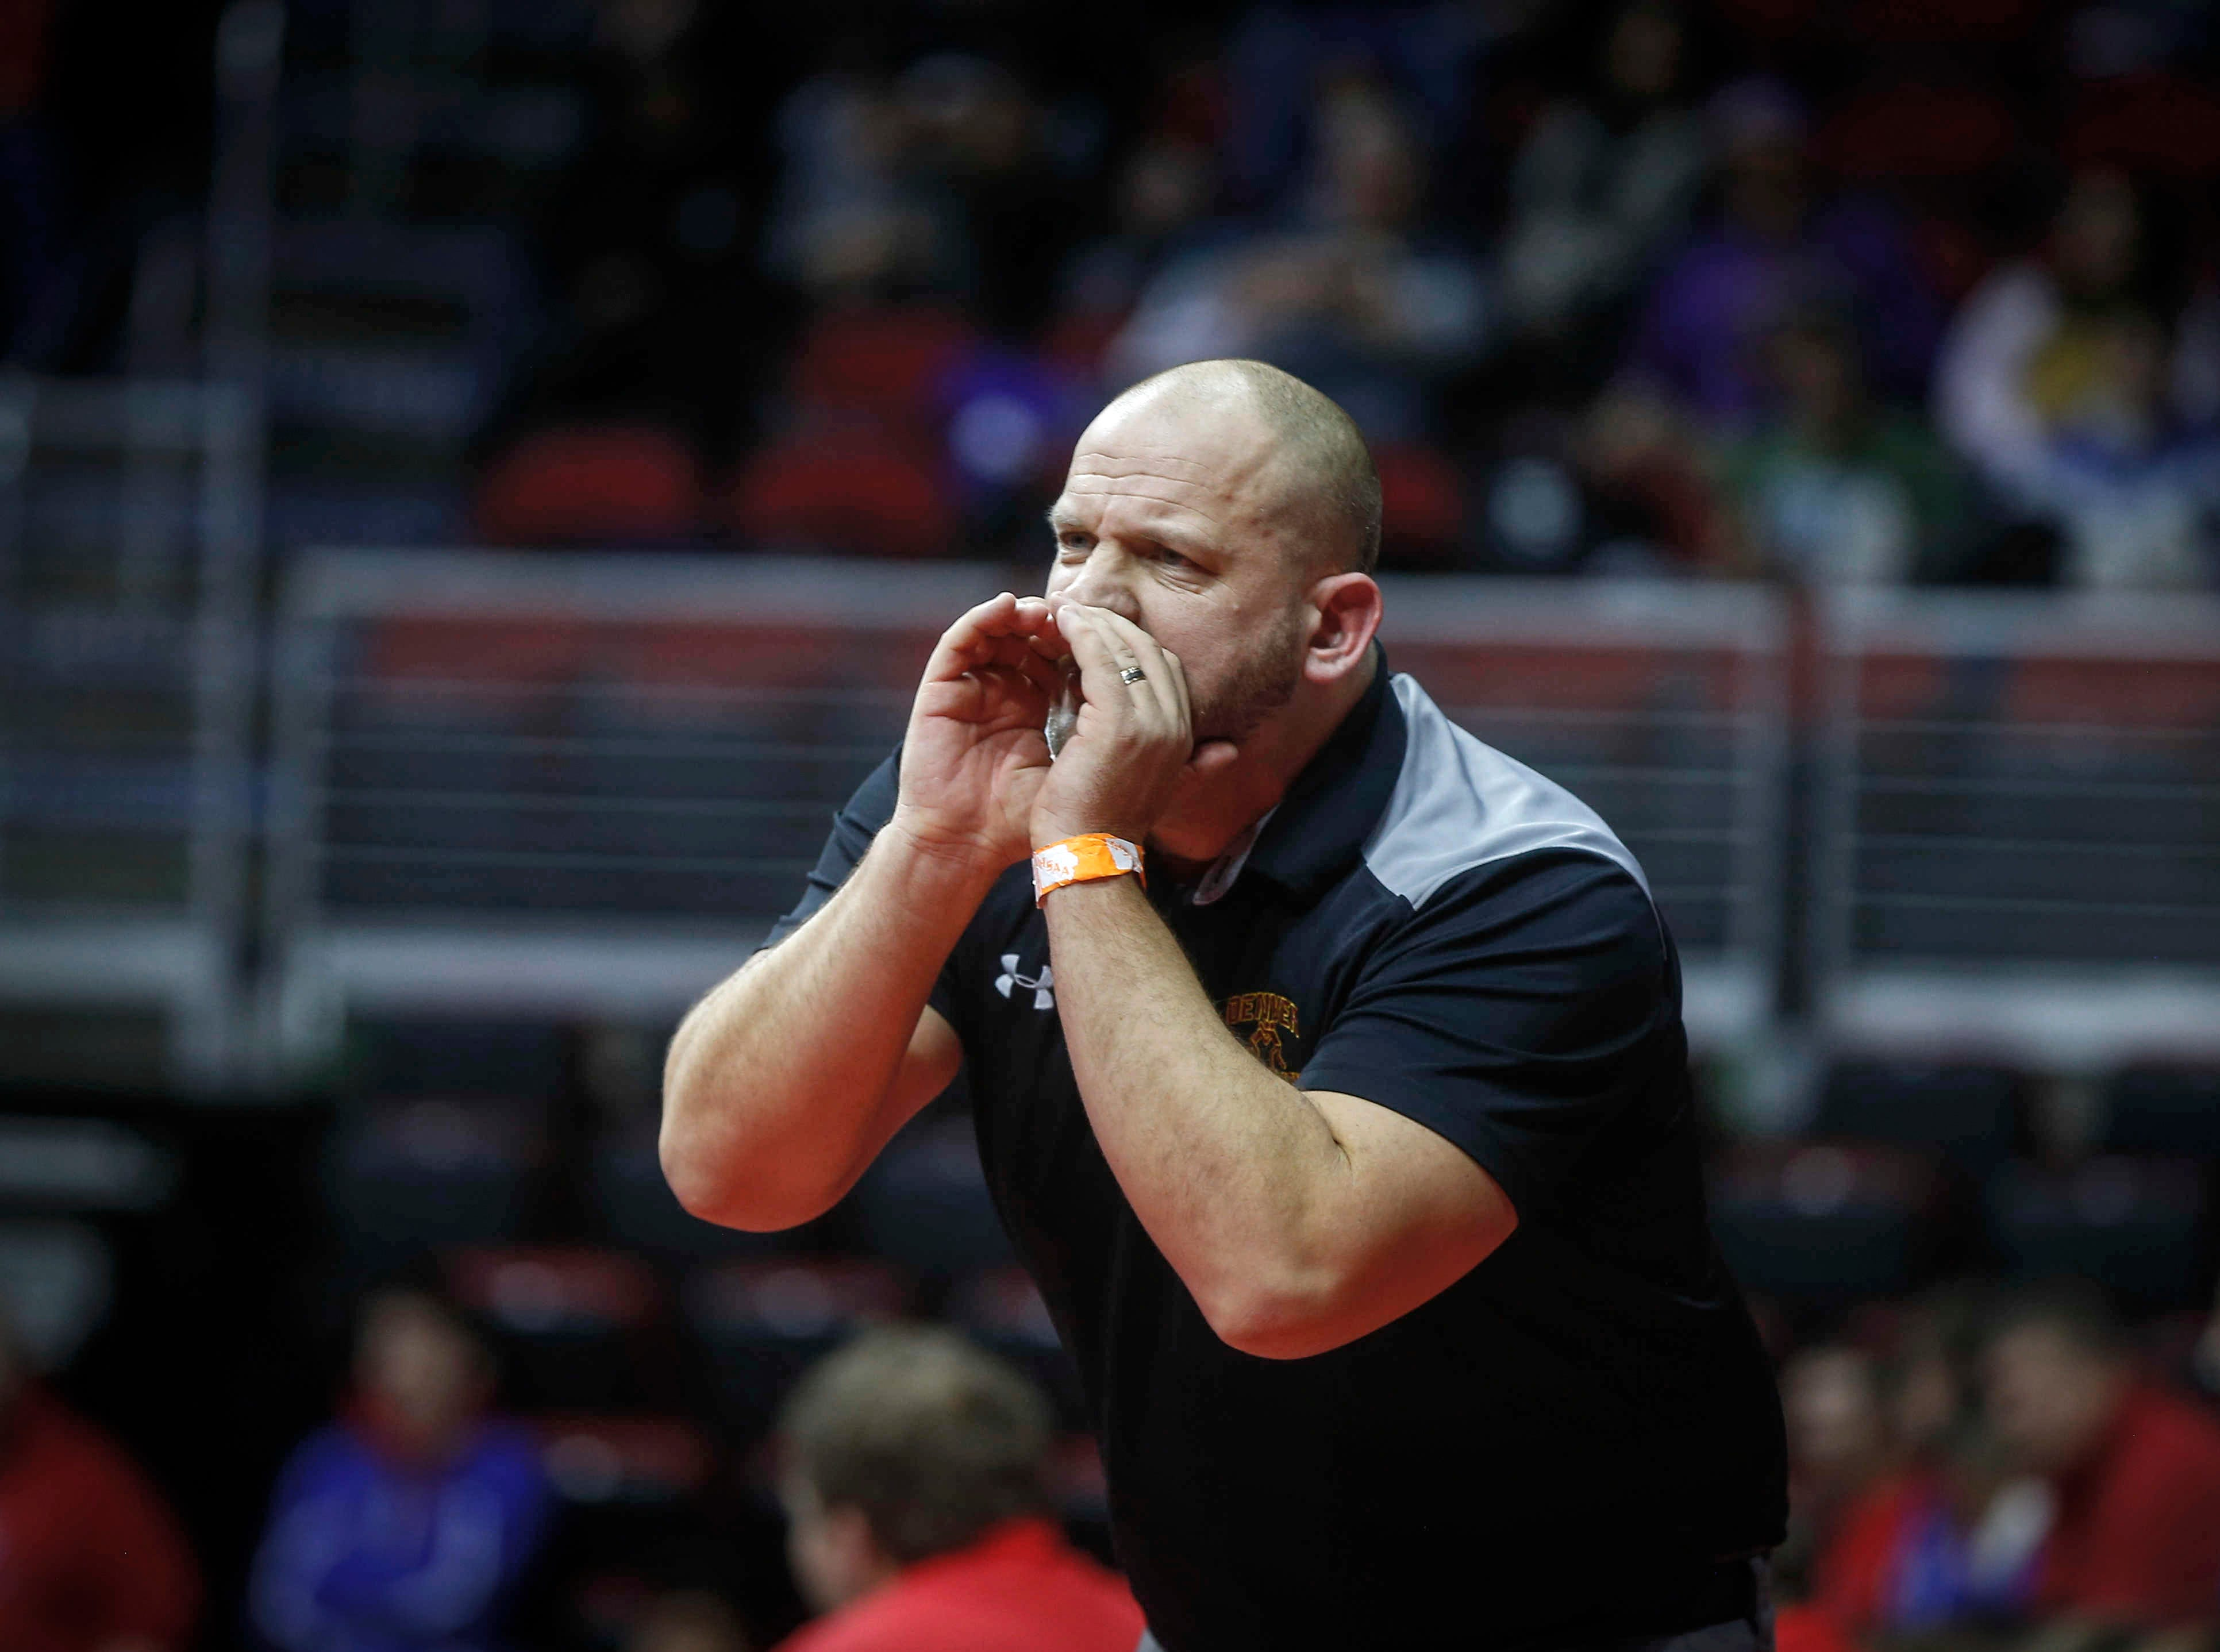 Denver head wrestling coach Chris Krueger calls out to a wrestler in a state dual against Don Bosco during the 2019 Iowa high school dual wrestling state tournament on Wednesday, Feb. 13, 2019, at Wells Fargo Arena in Des Moines.